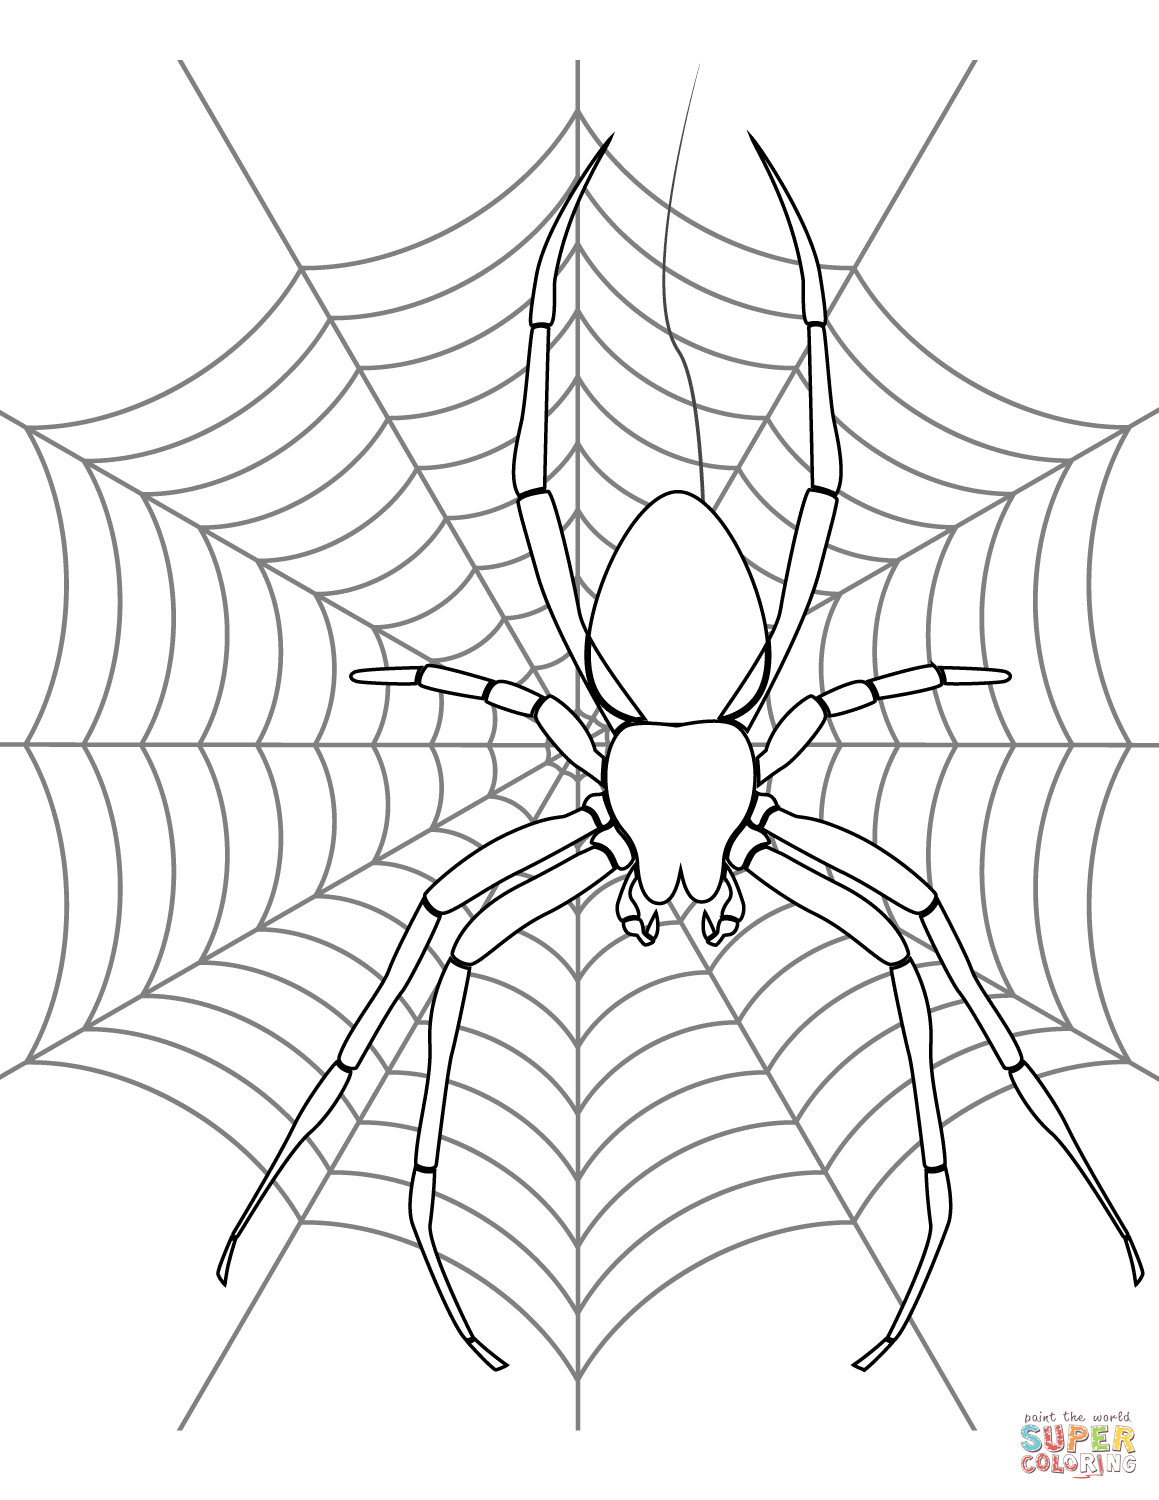 Spider On Its Web Coloring Page